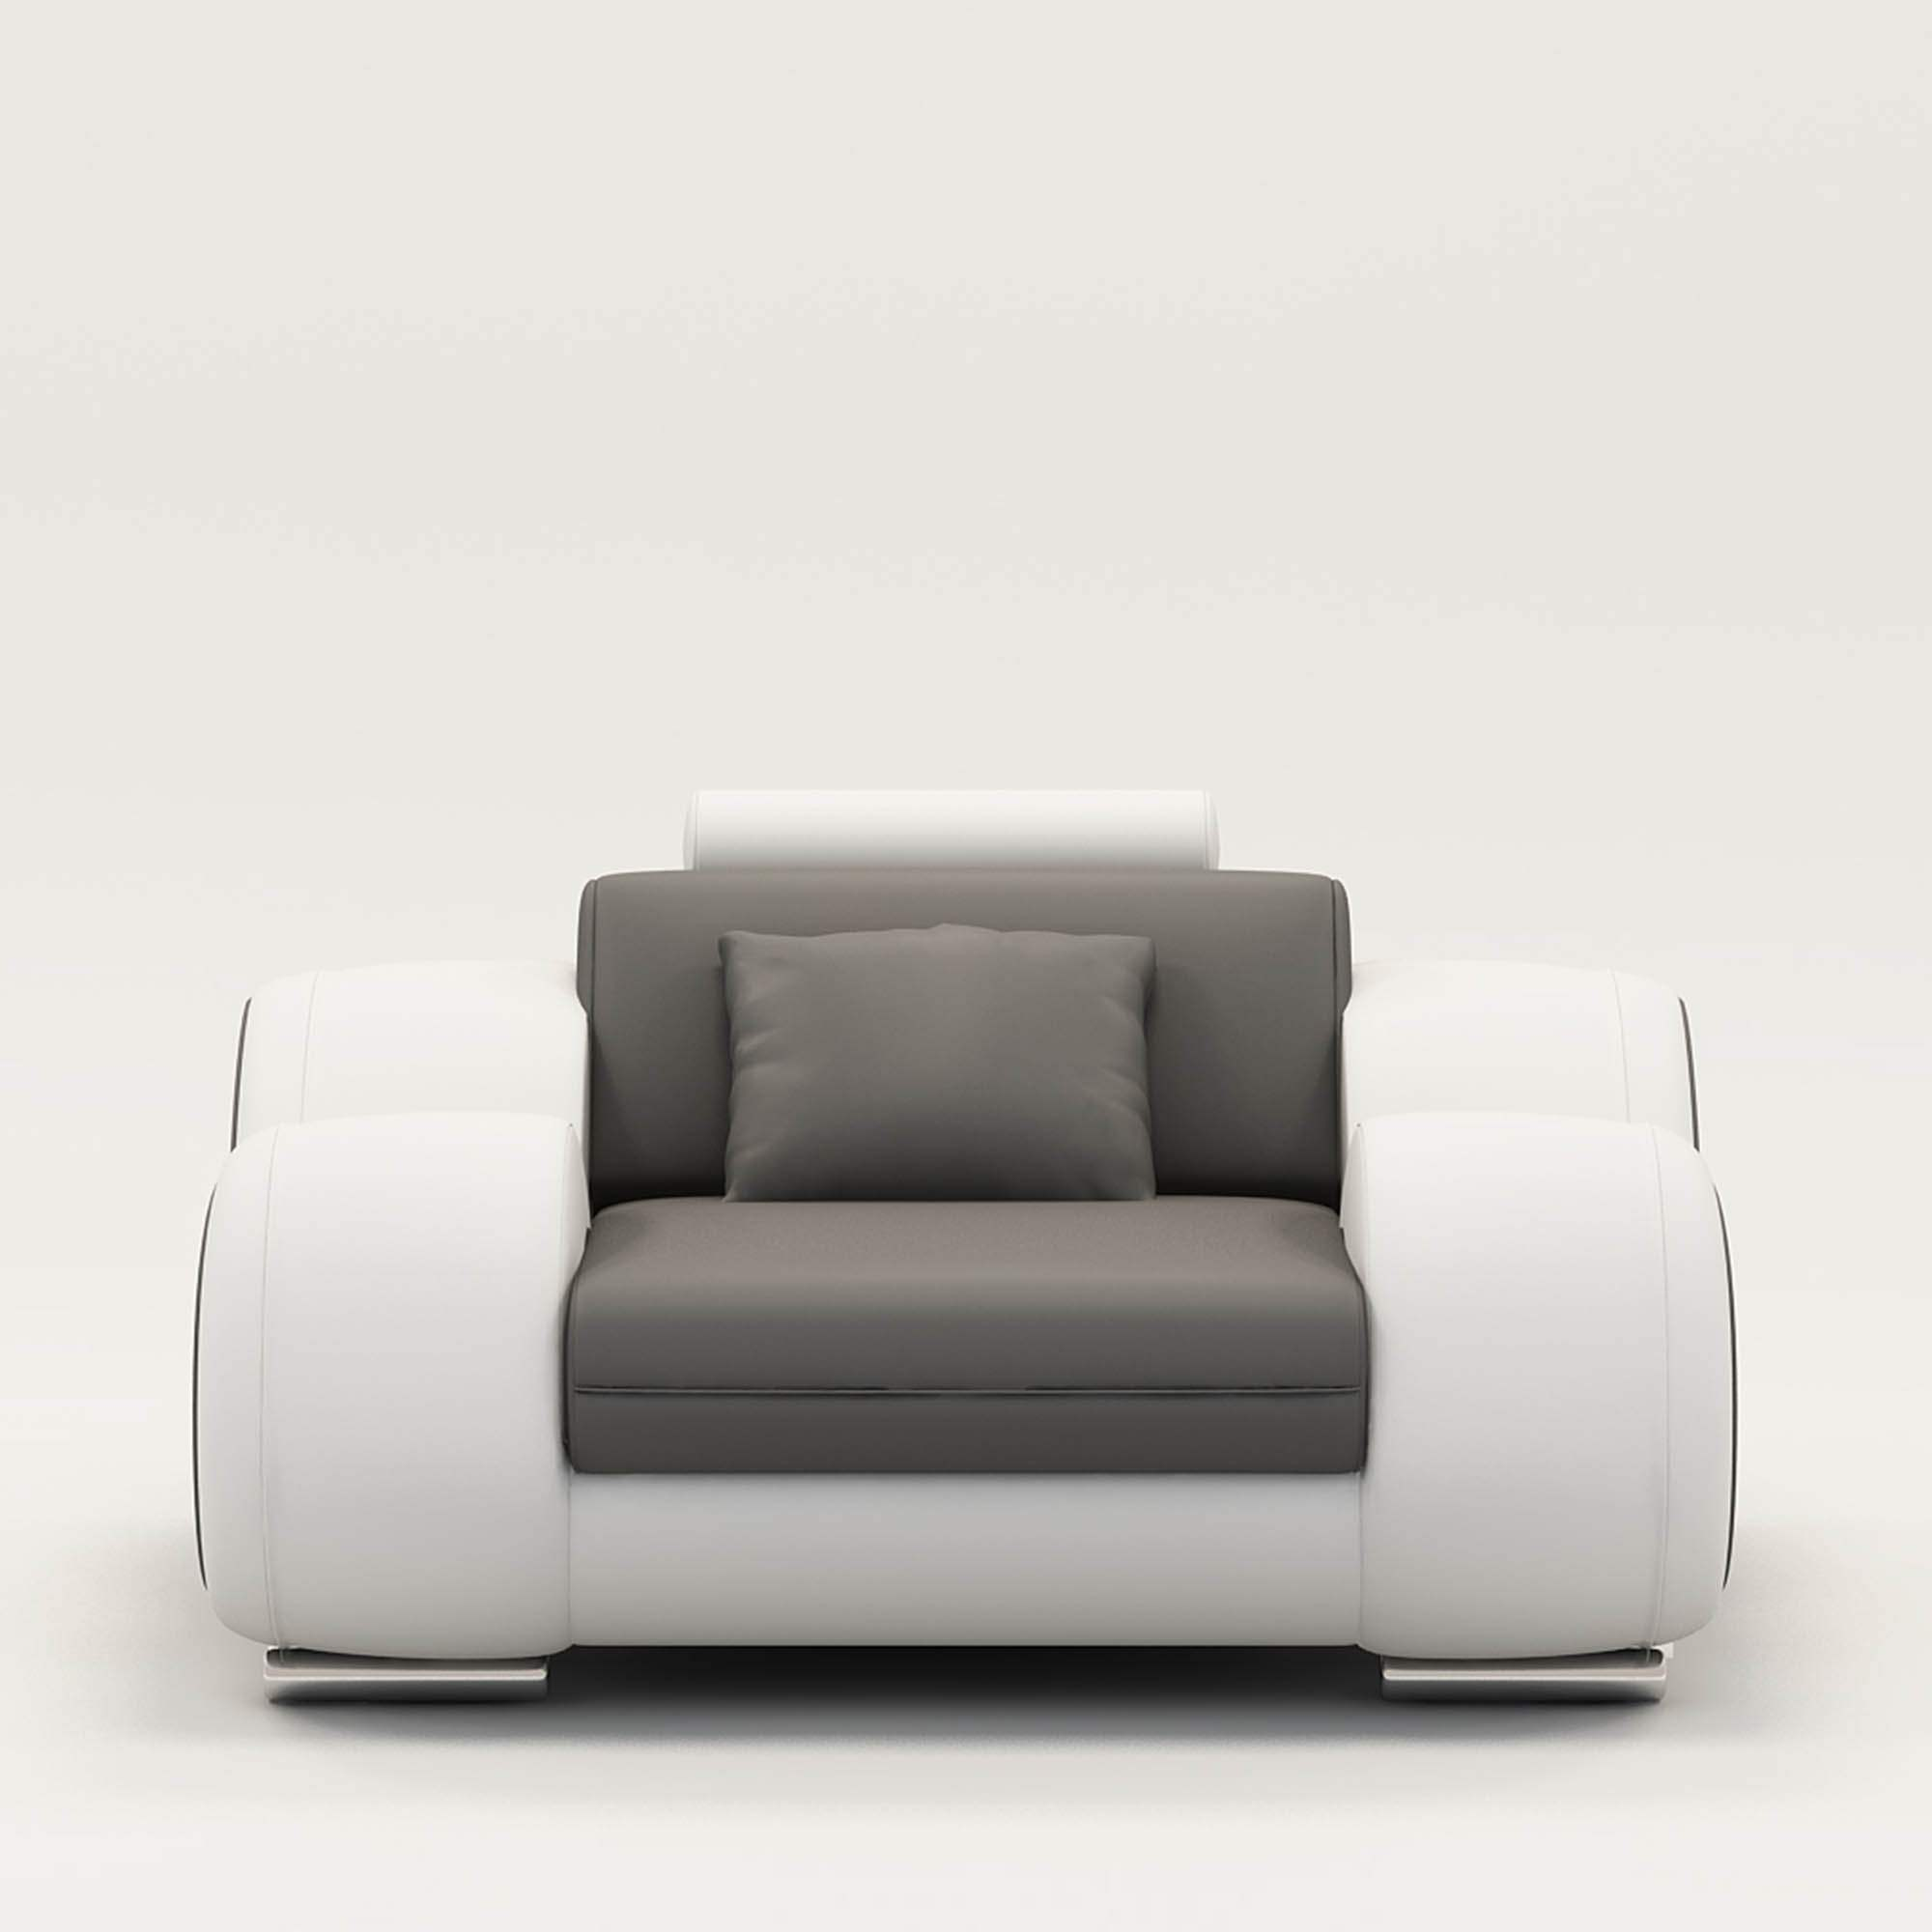 Deco in paris 1 fauteuil cuir relax design gris et blanc for Chaise design gris et blanc